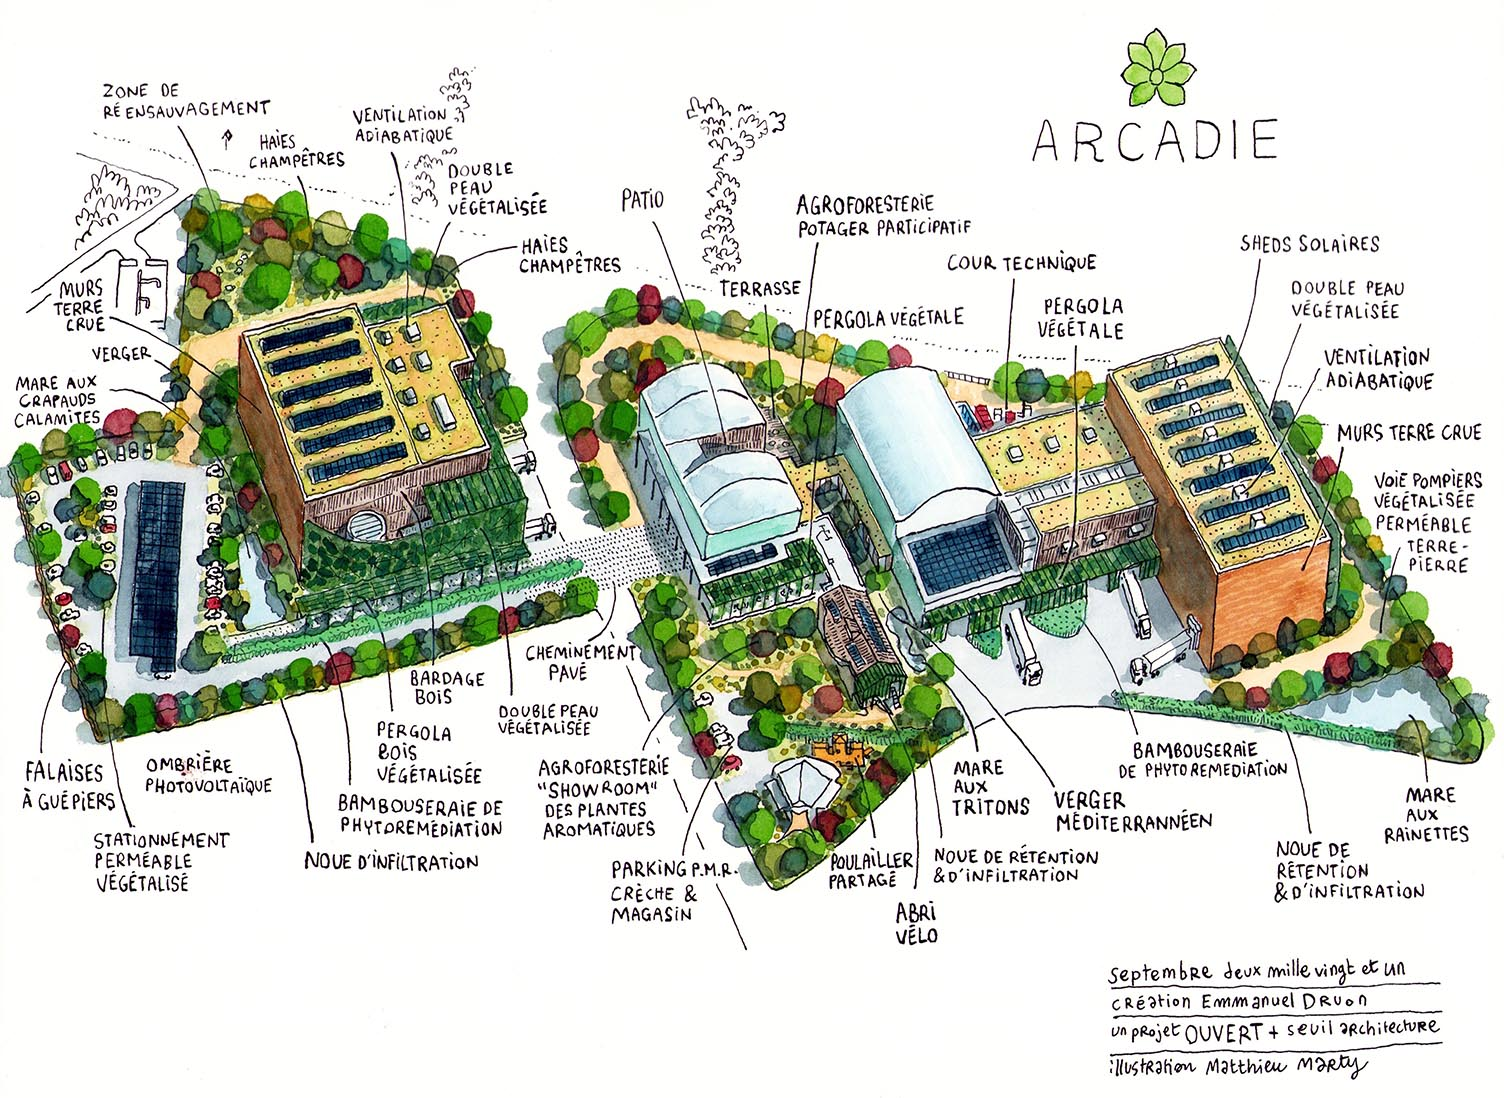 ARCADIE Projection 2021 projet Ouvert Seuil architecture illustration Matthieu Marty sept 2021